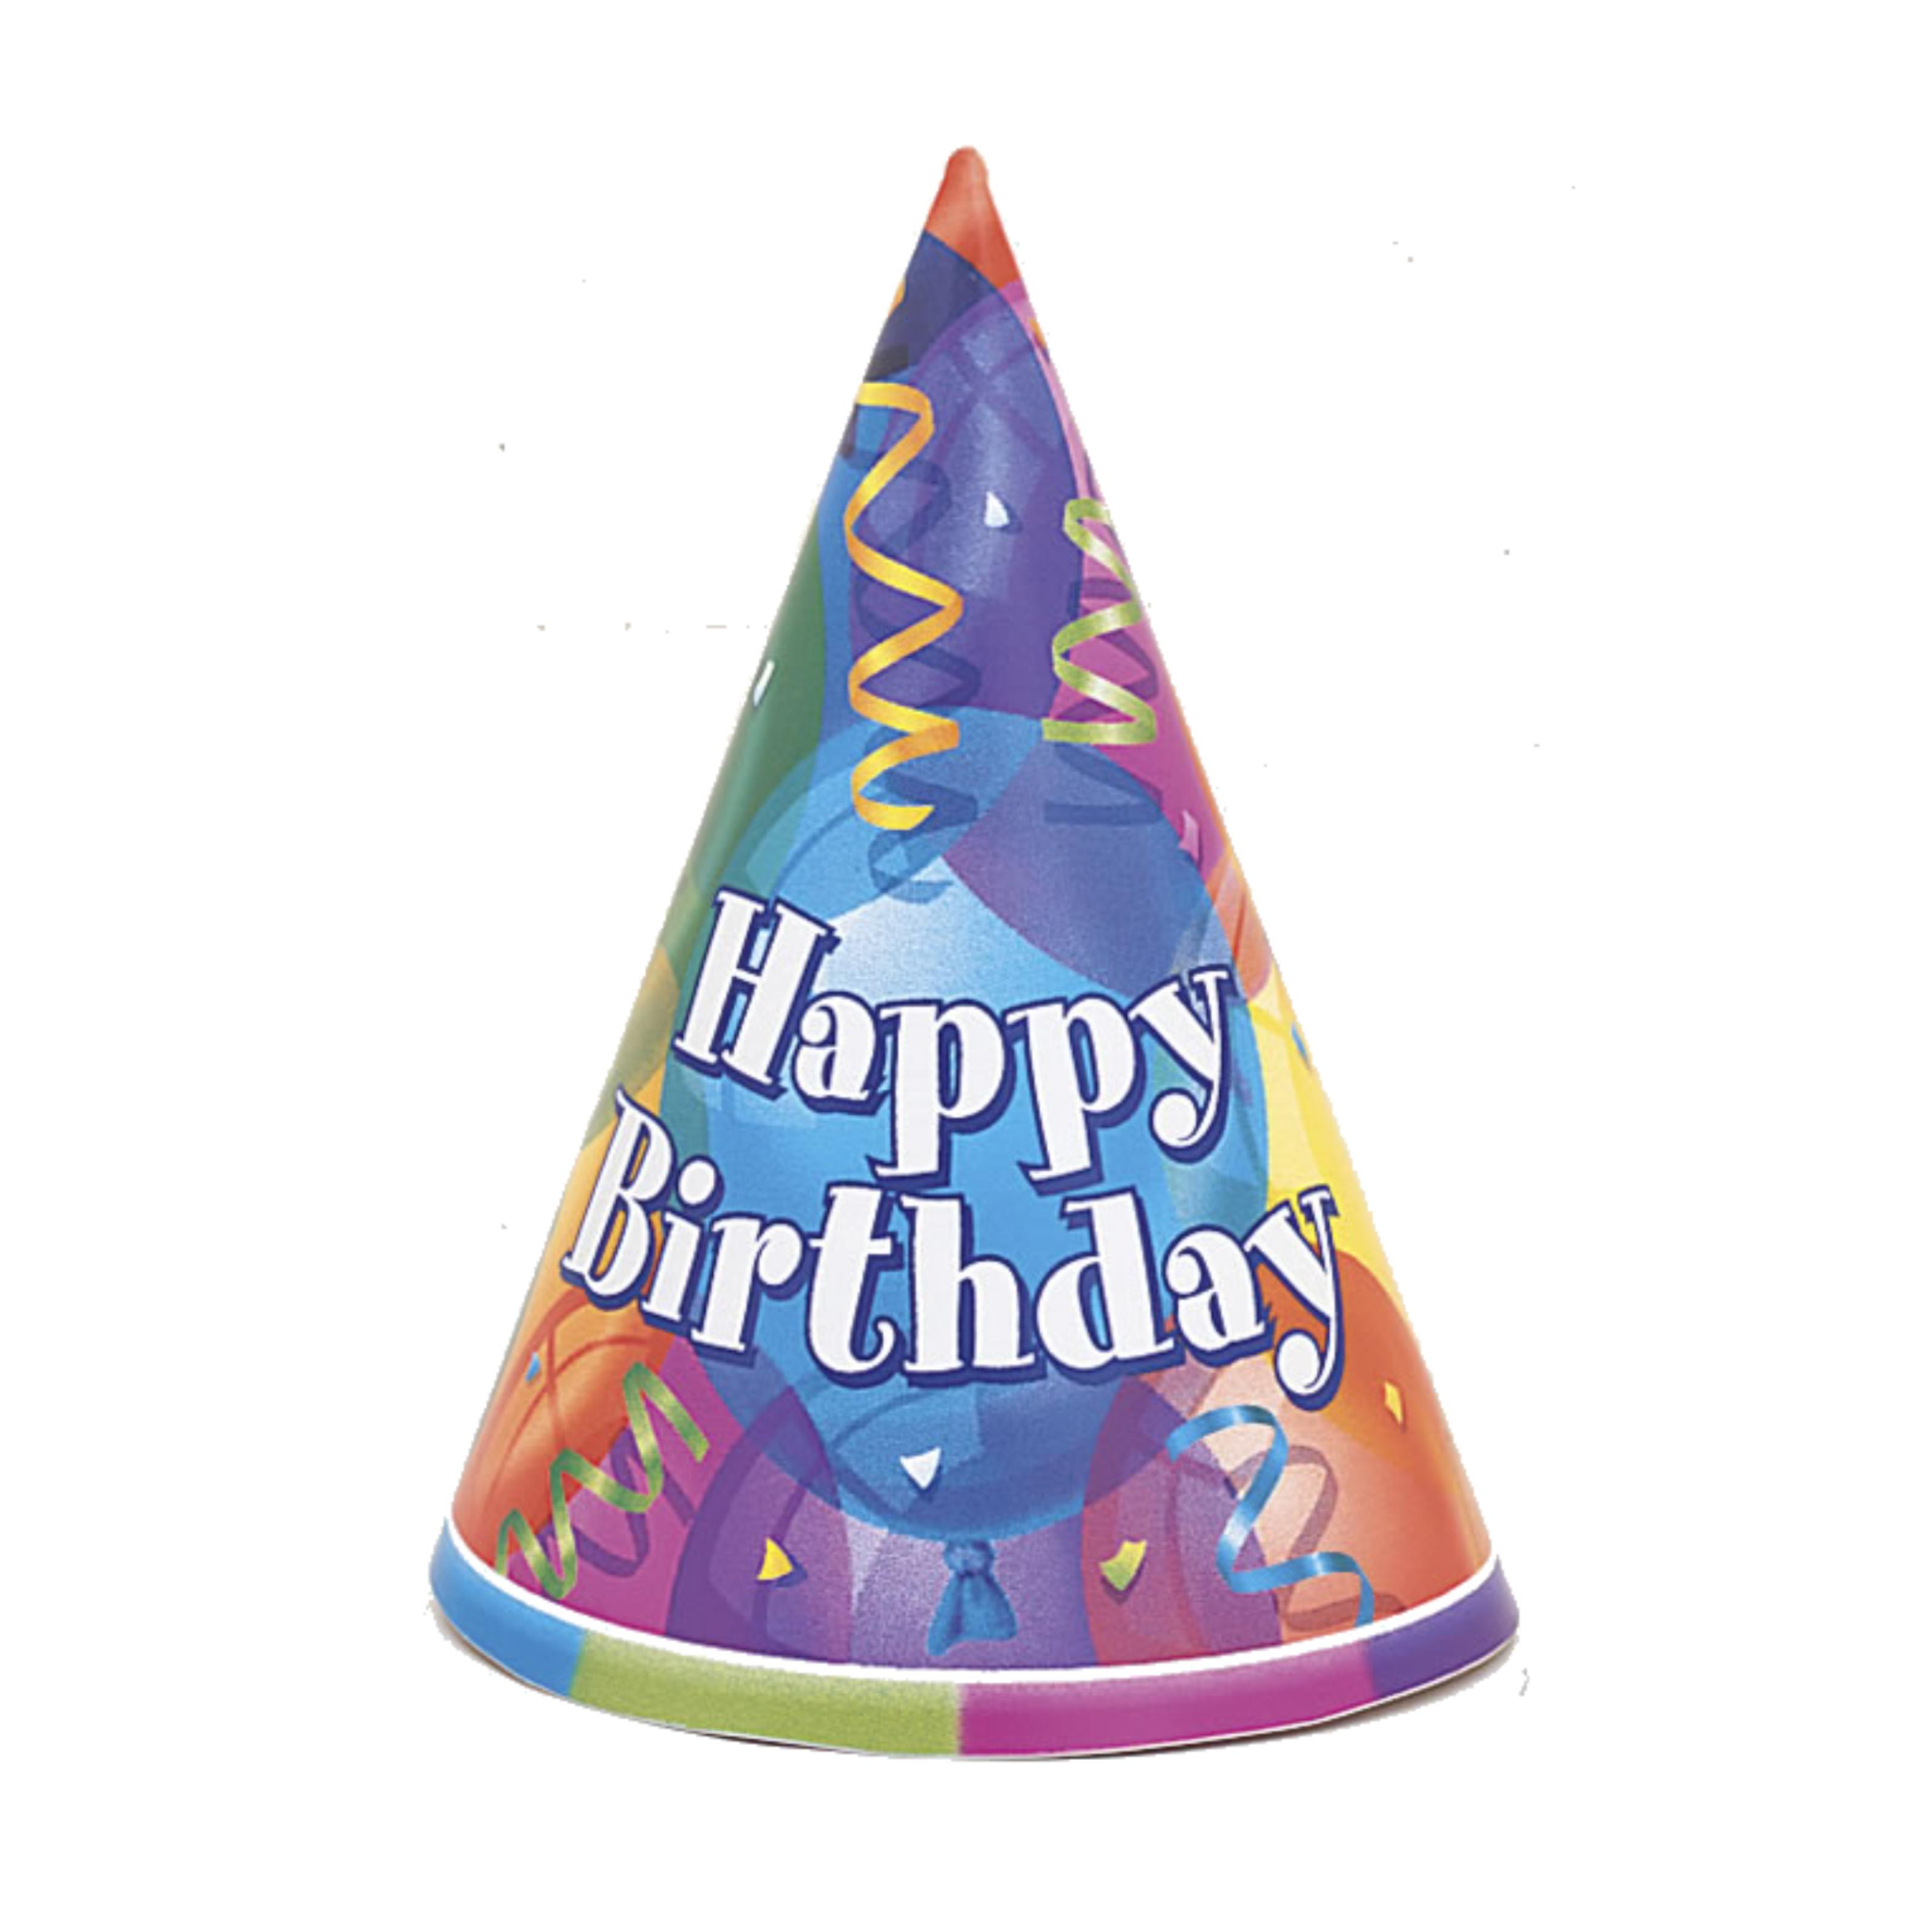 Happy birthday hat clipart 5